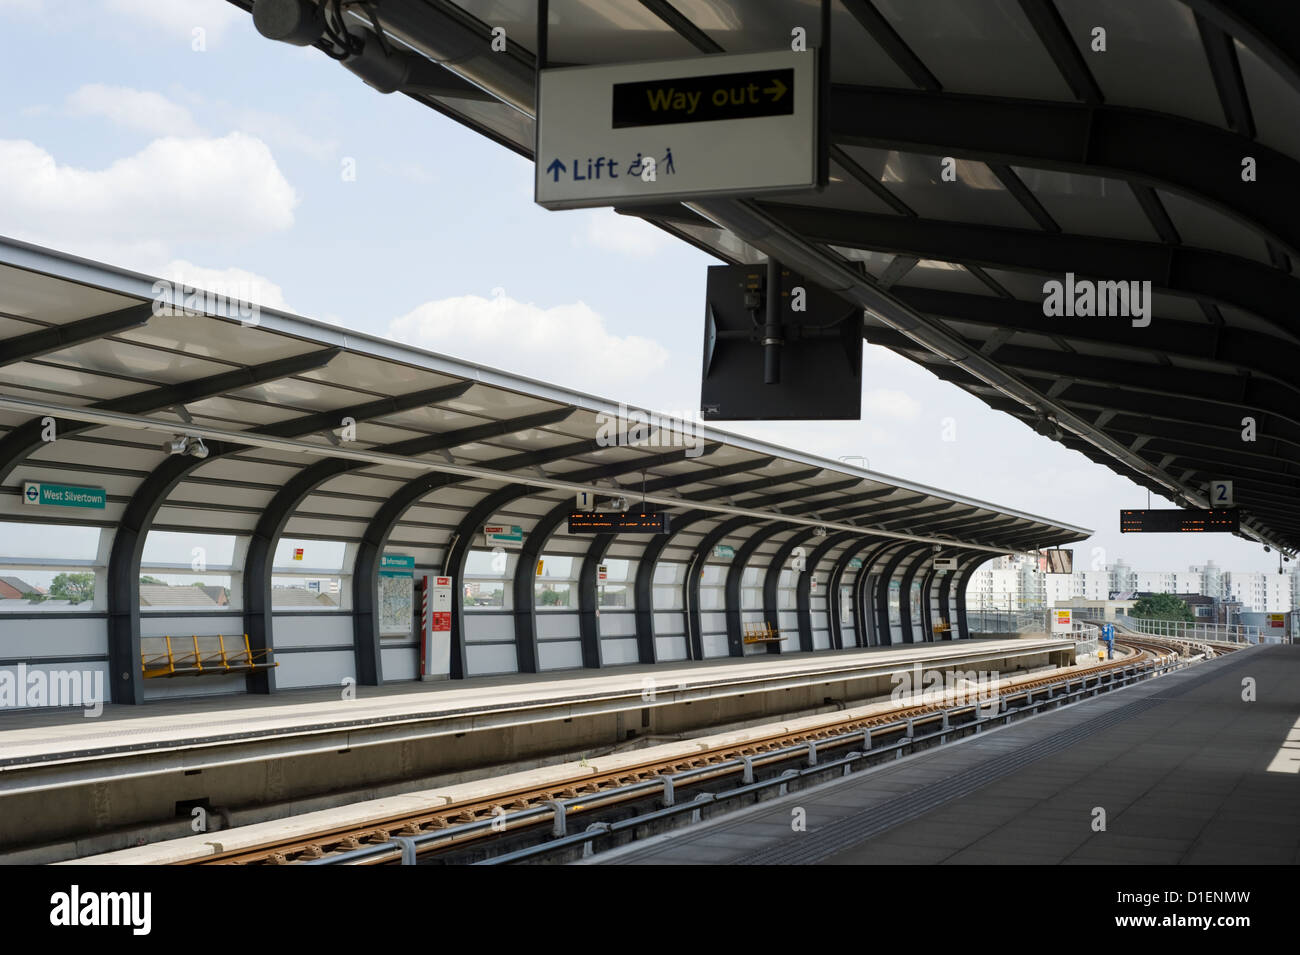 West Silvertown station on the Docklands Light Railway in East London, England, UK - Stock Image